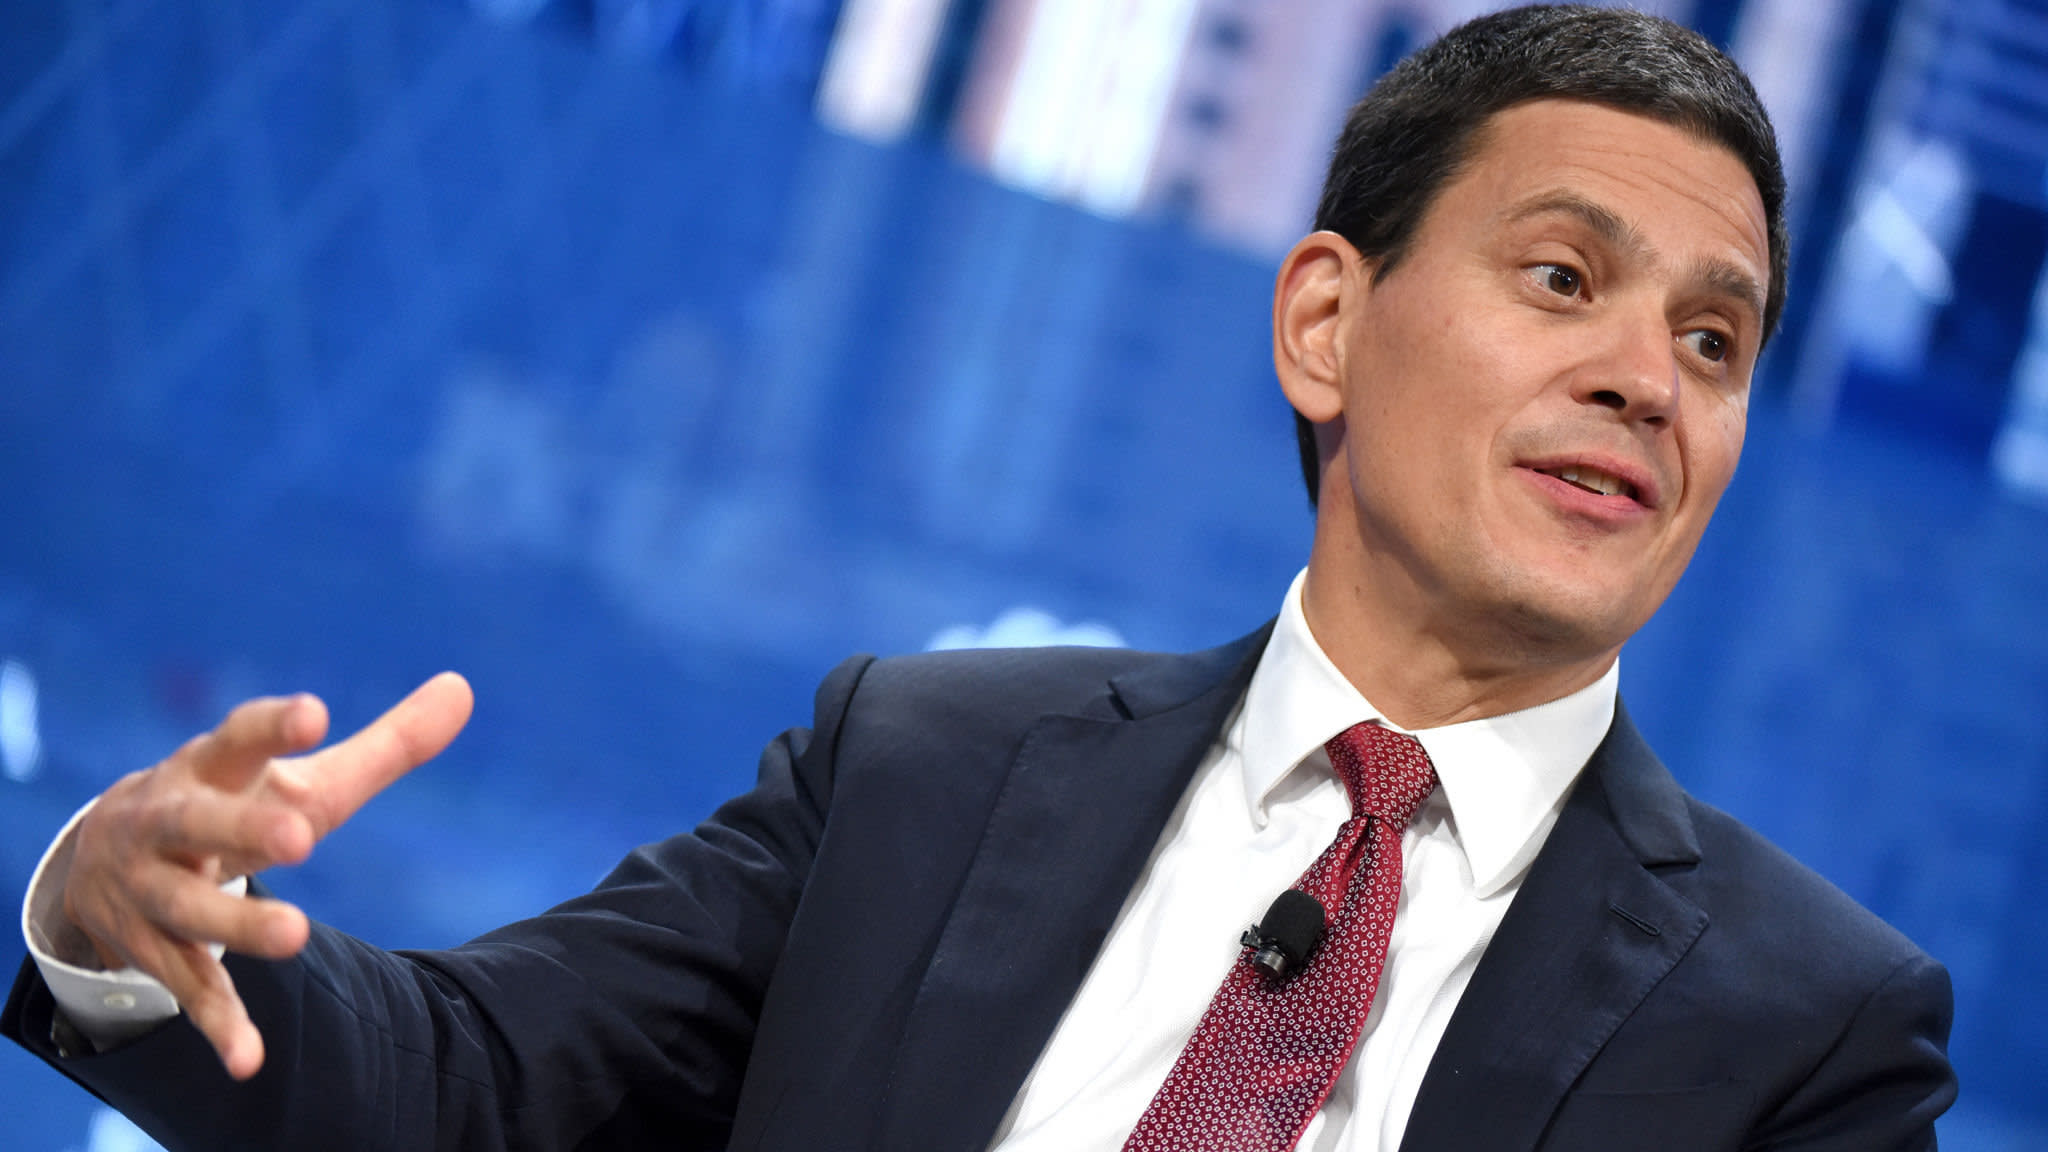 David Miliband adds to criticism of UK arms sales to Saudi Arabia | Financial Times